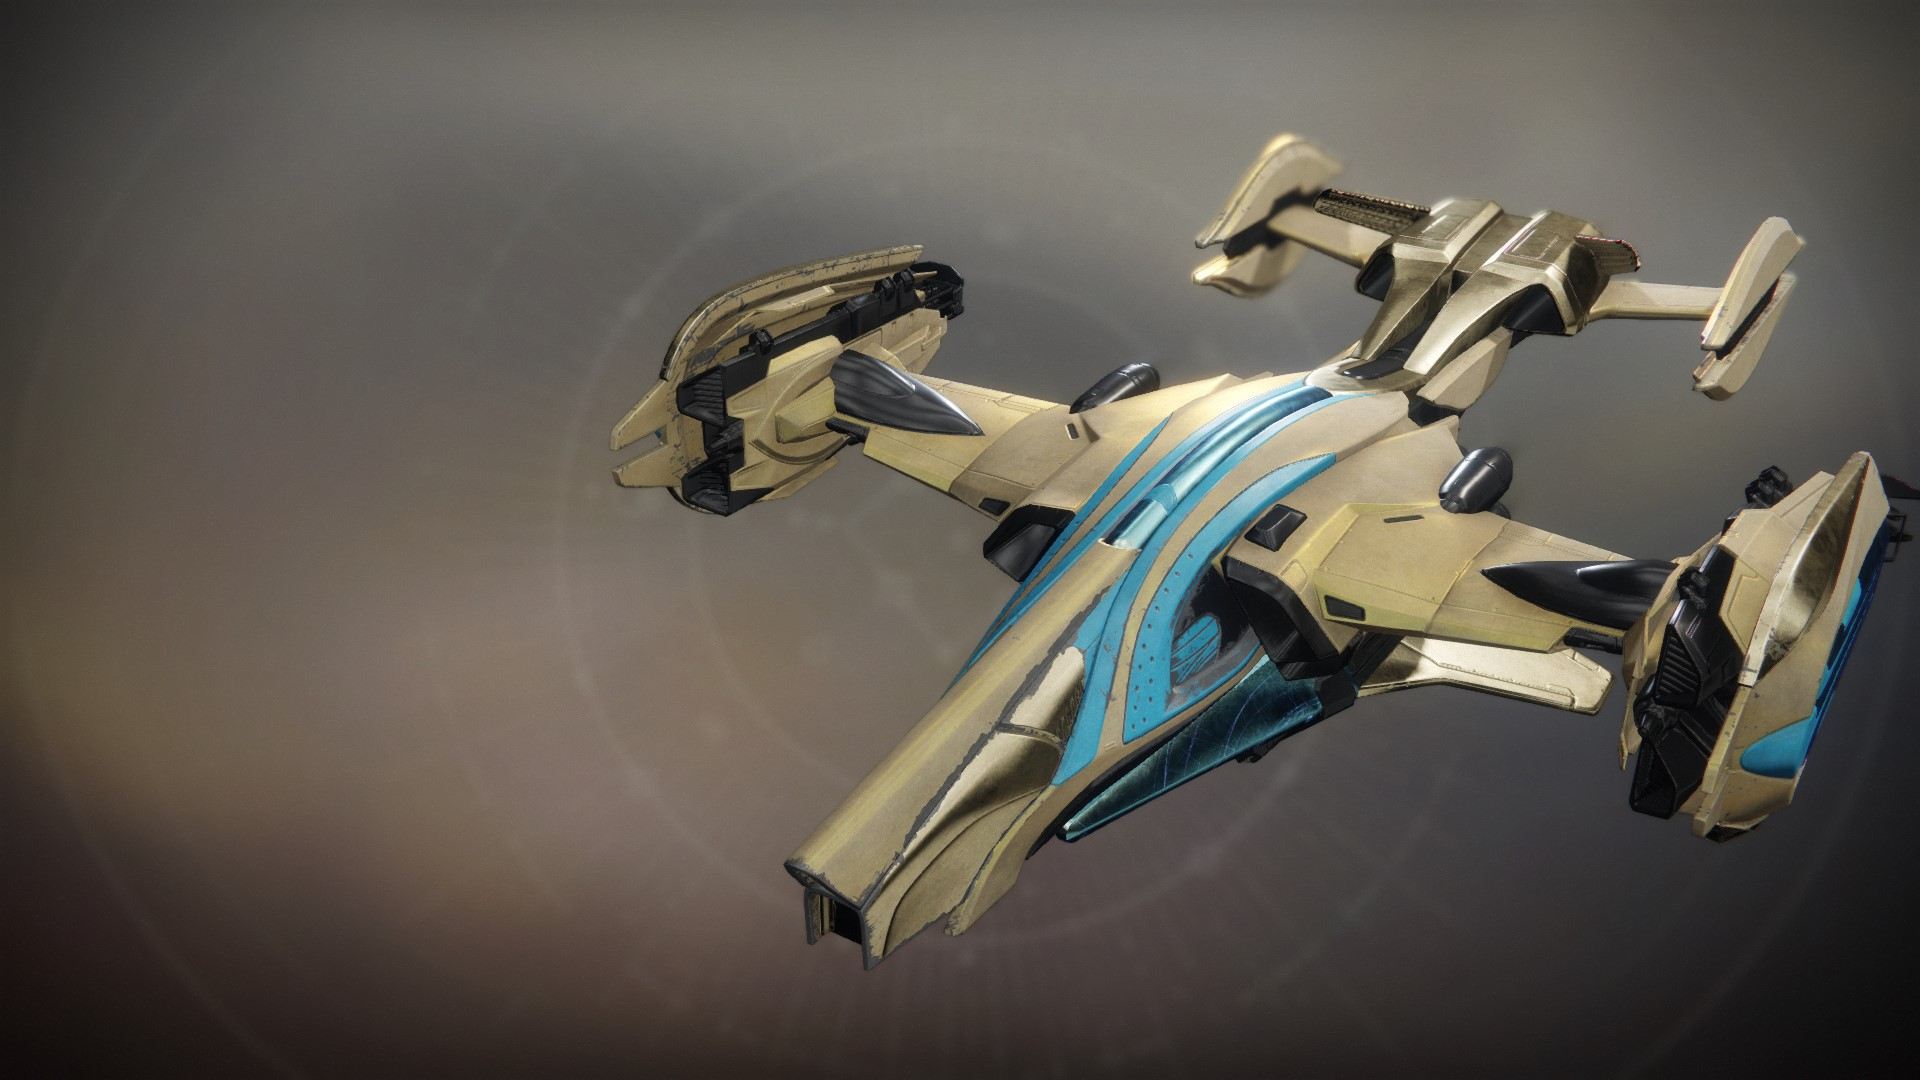 Ermine Tac 717 Destiny 2 Legendary Ship Lightgg